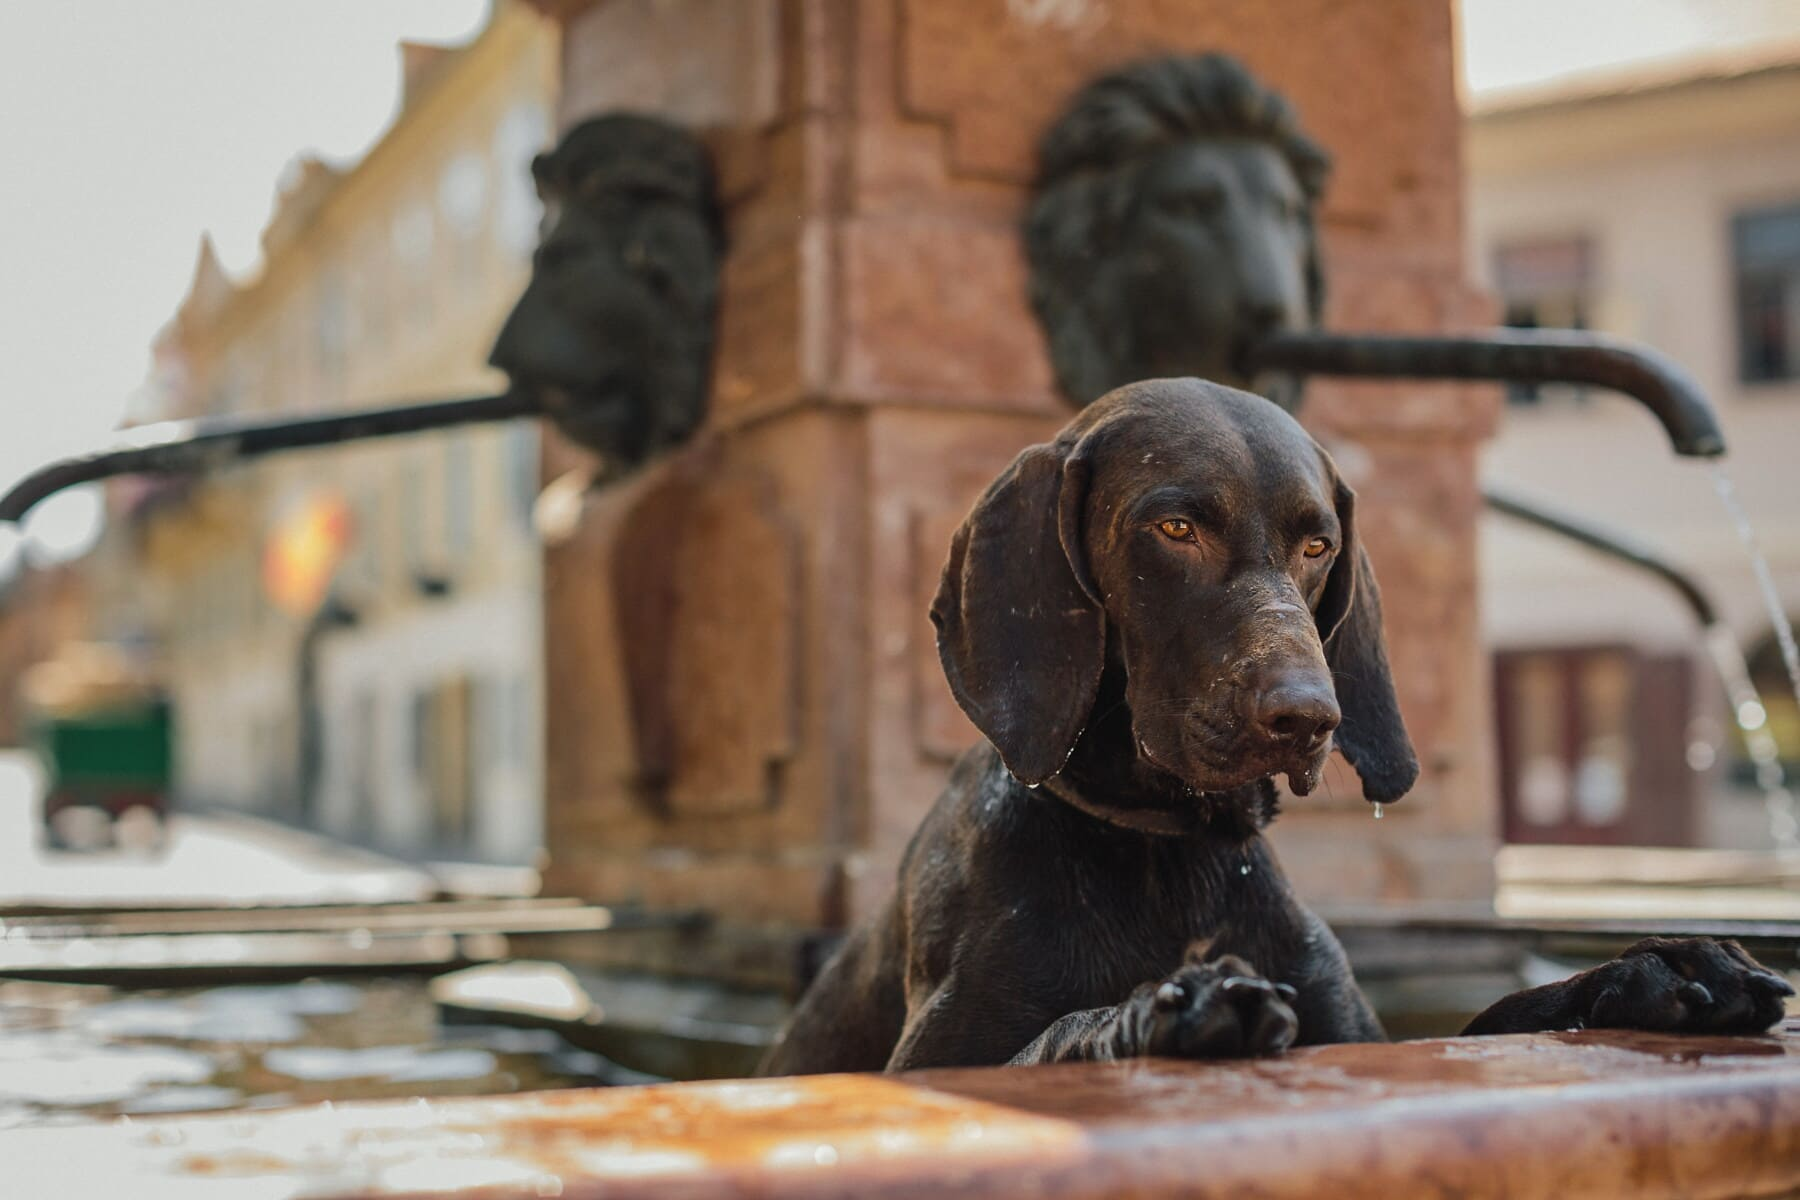 hunting dog, bathing, fountain, close-up, downtown, animal, street, canine, hound, pet